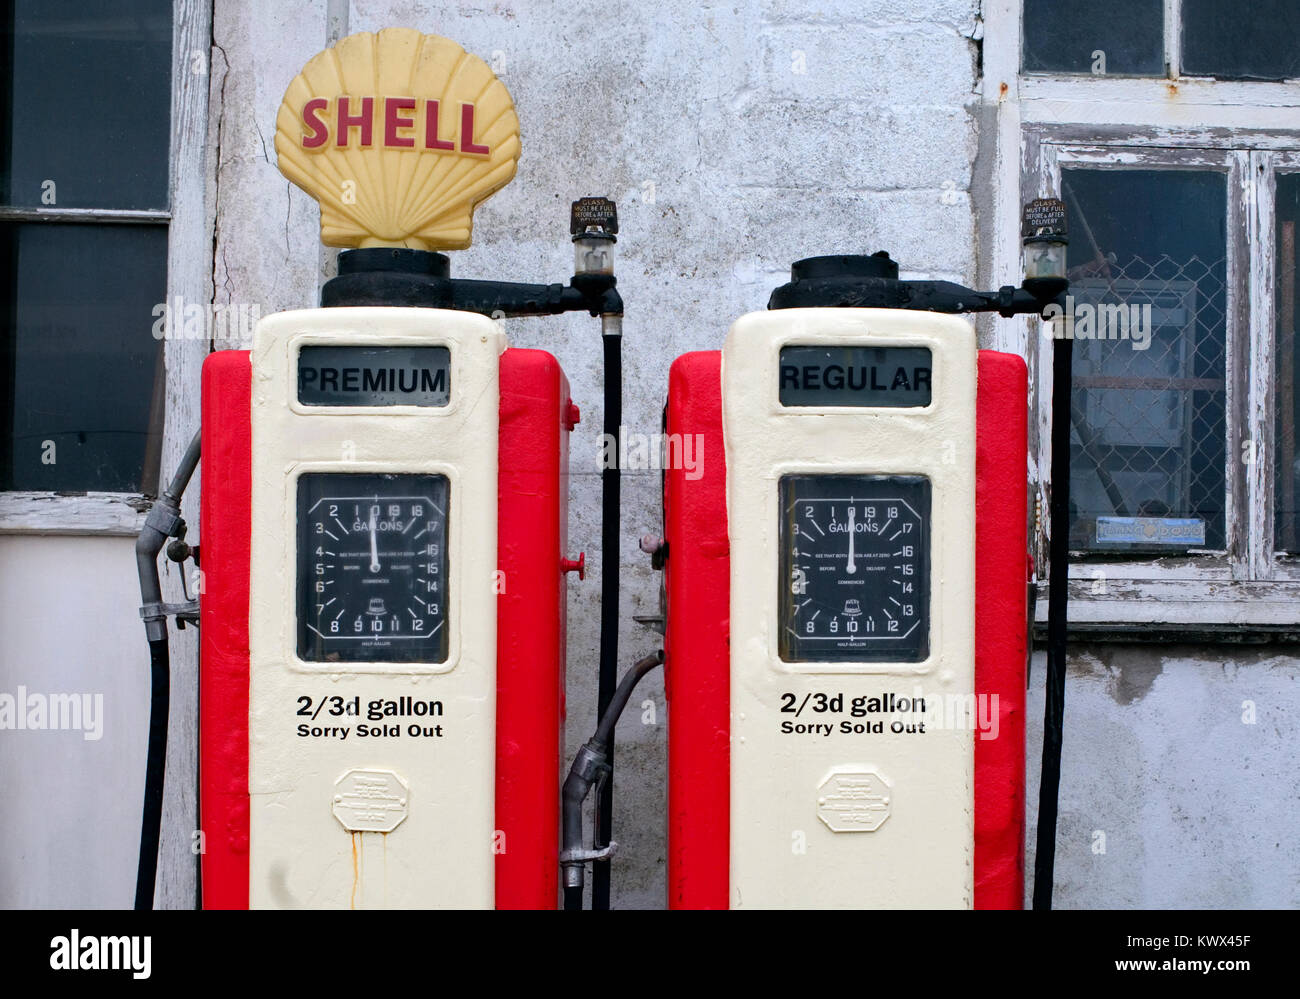 Old Shell Petrol Pumps Stock Photos & Old Shell Petrol Pumps